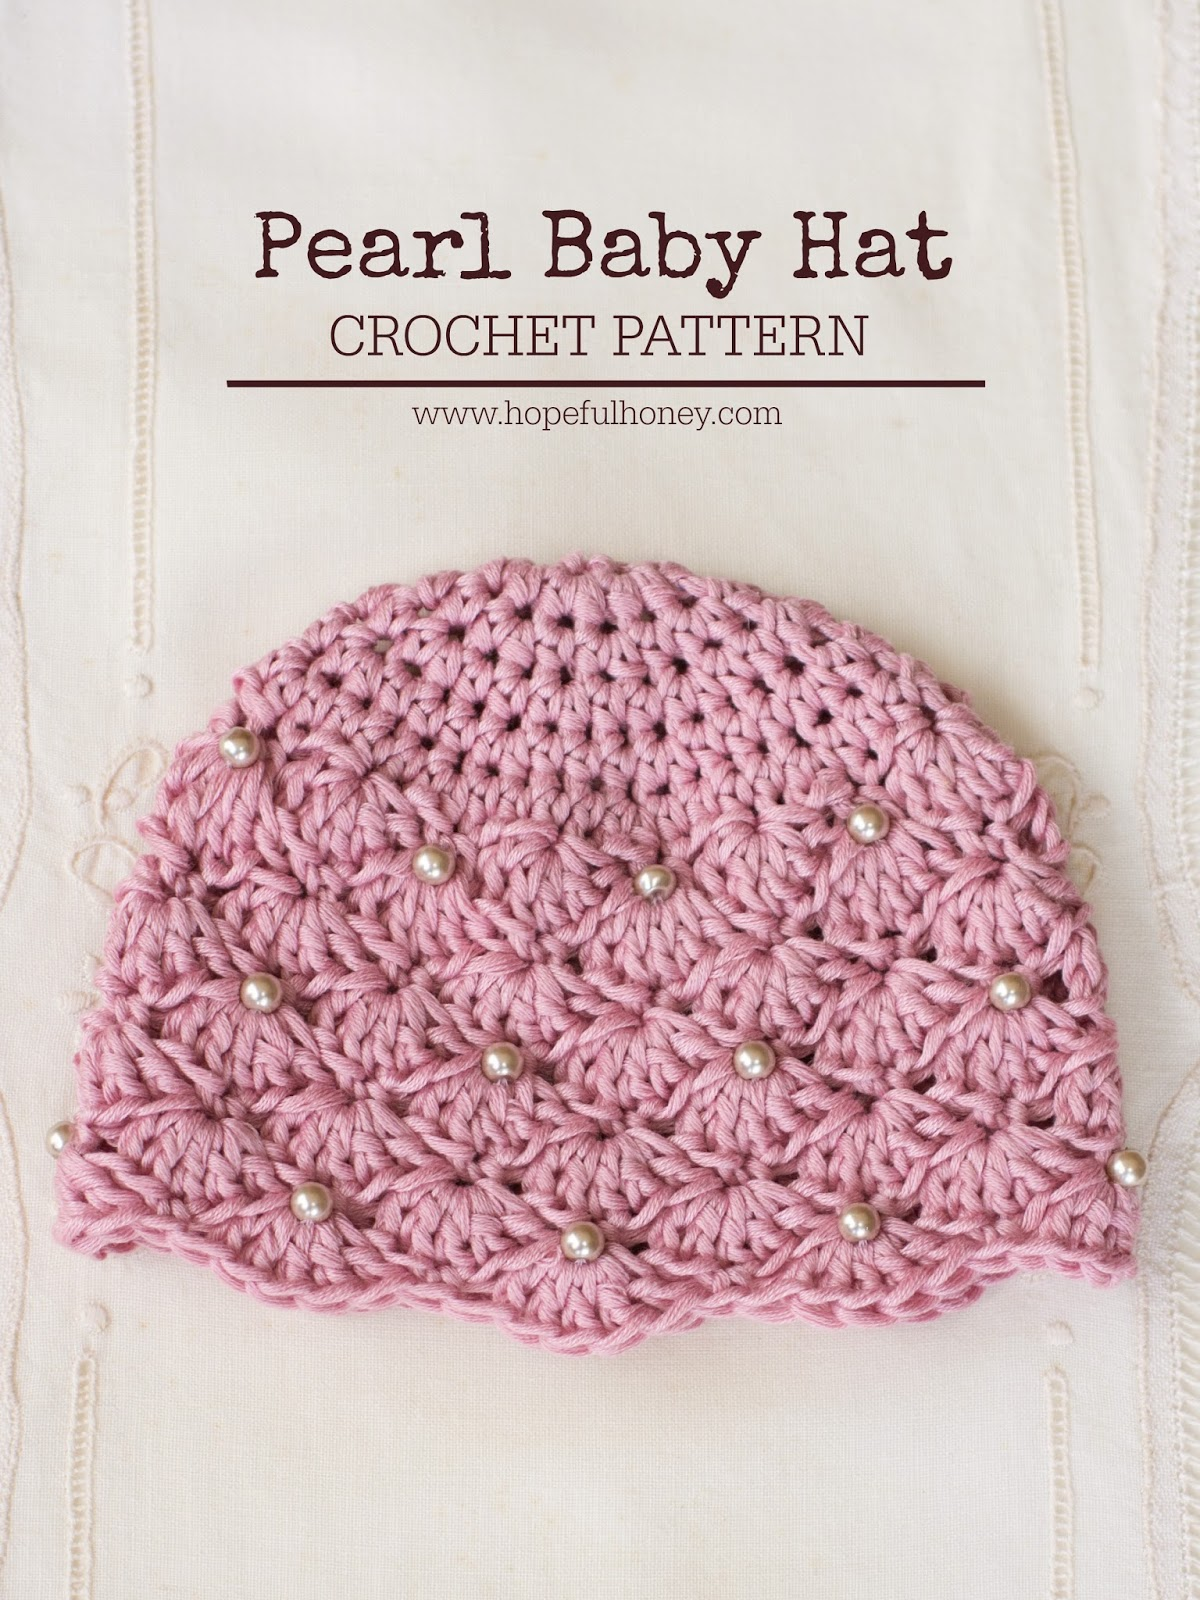 Crochet Child Hat Pattern Free : Hopeful Honey Craft, Crochet, Create: Vintage Pearl Baby ...